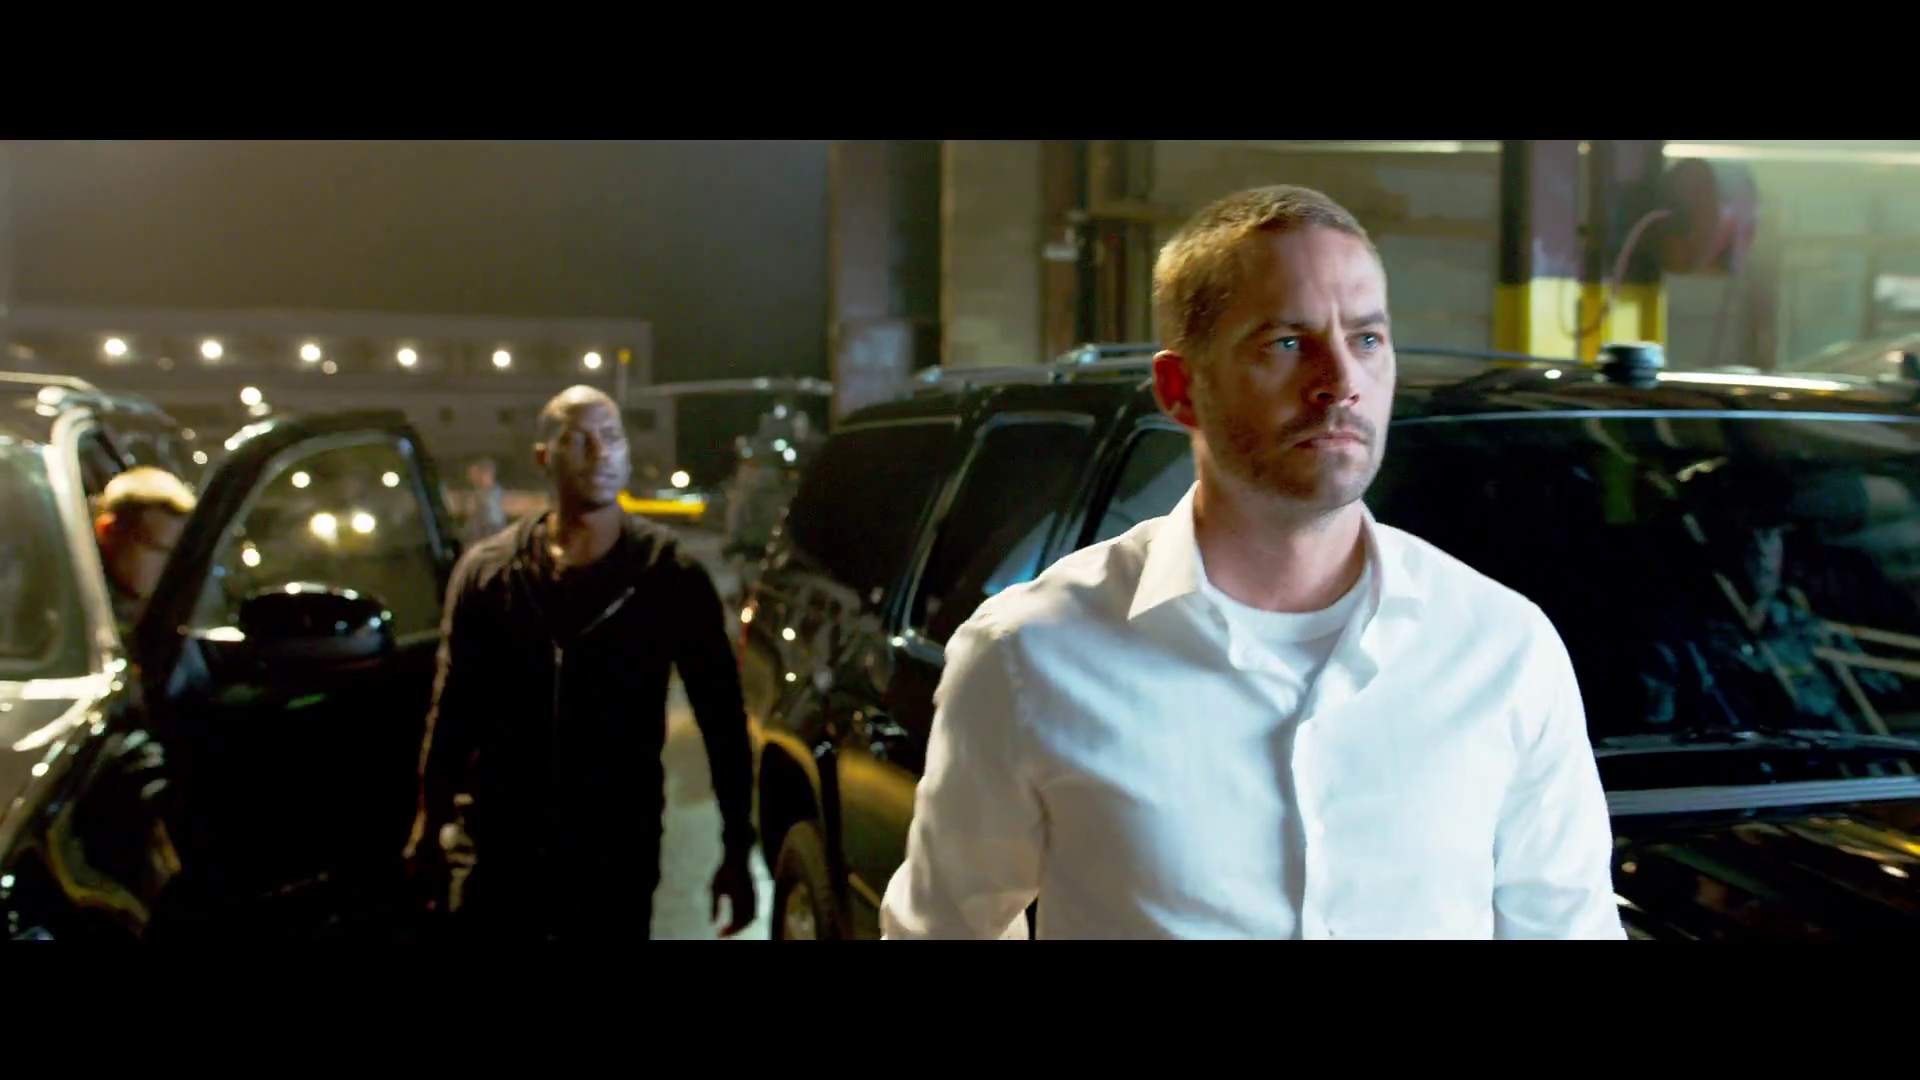 furious 7 full movie free watch furious 7 movie. Black Bedroom Furniture Sets. Home Design Ideas